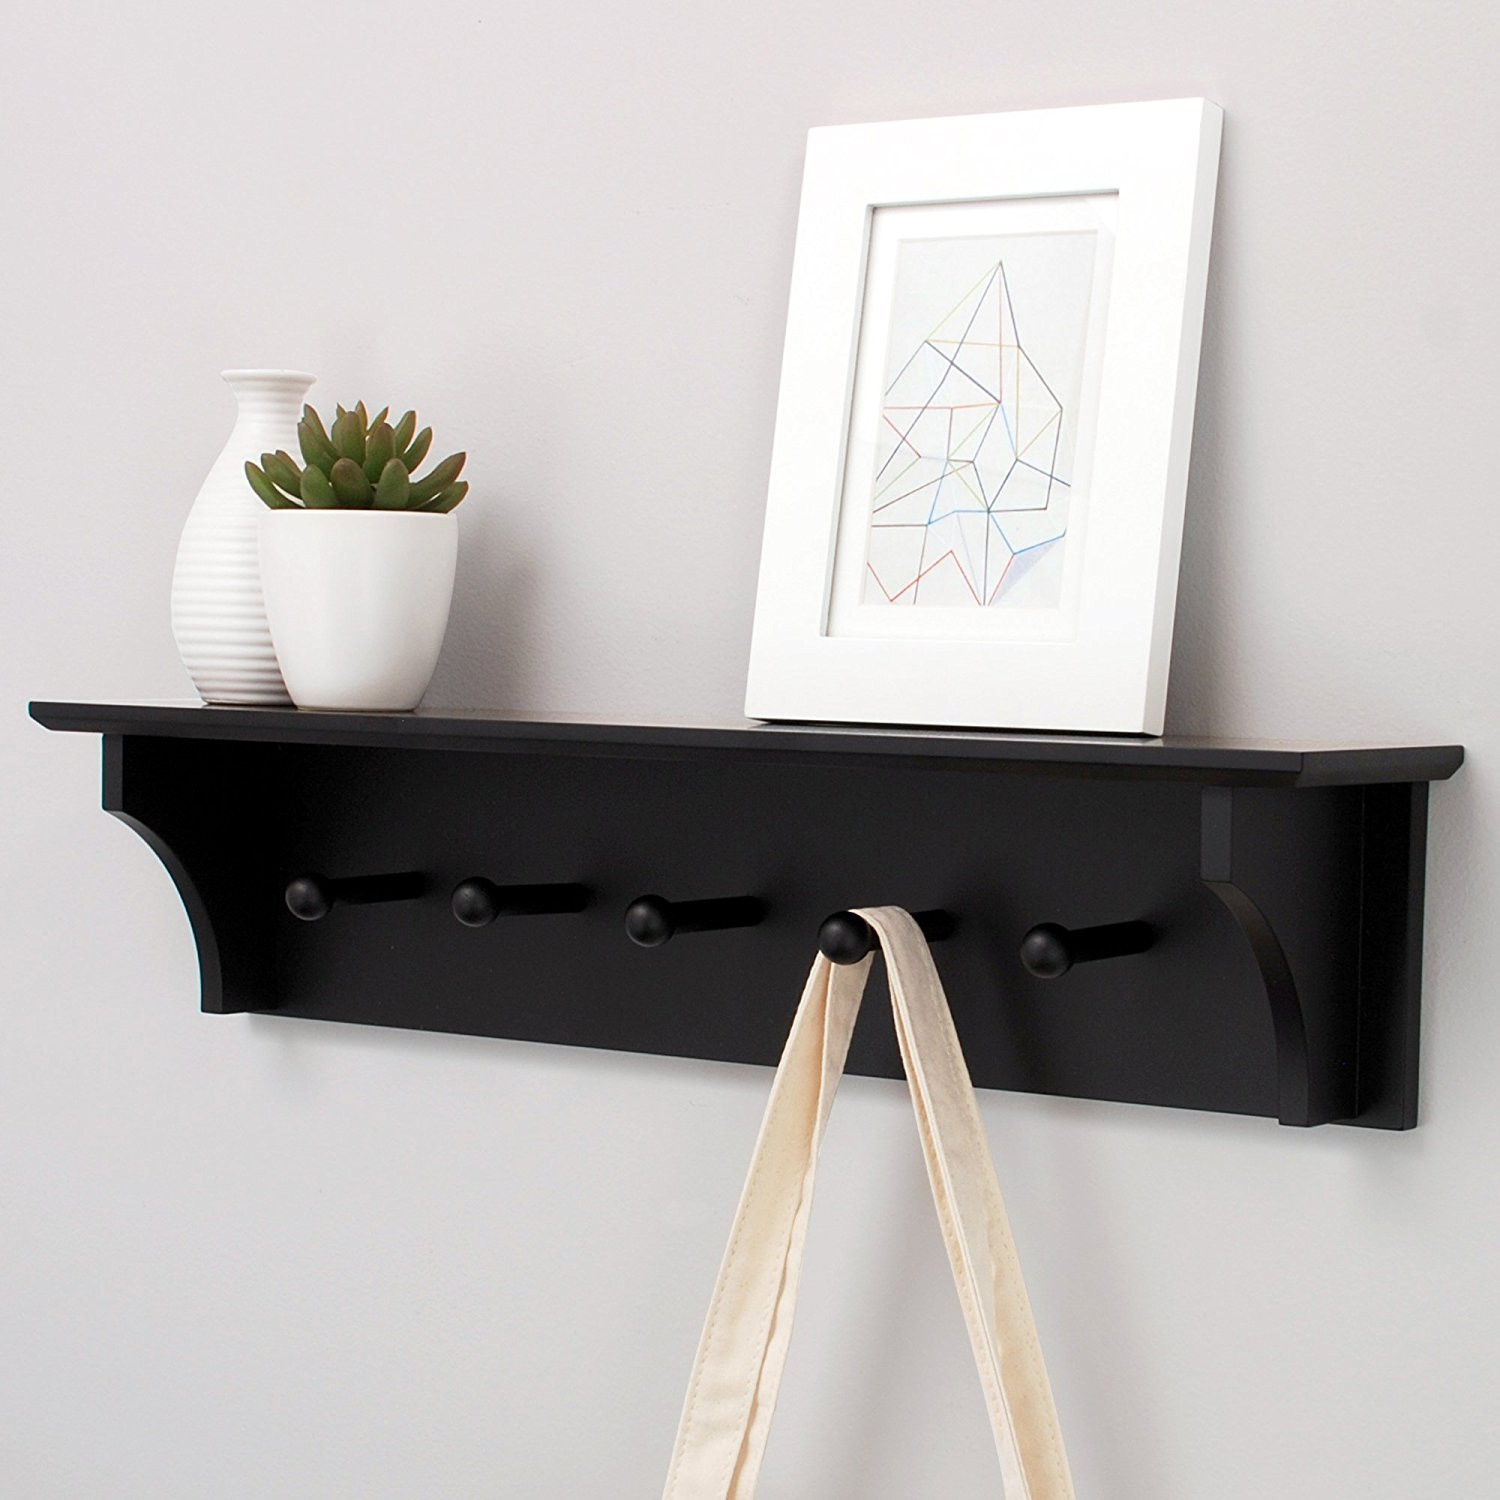 "Kiera Grace Foster Wall Shelf with 5 Pegs, 24"" by 5.5"", Black"